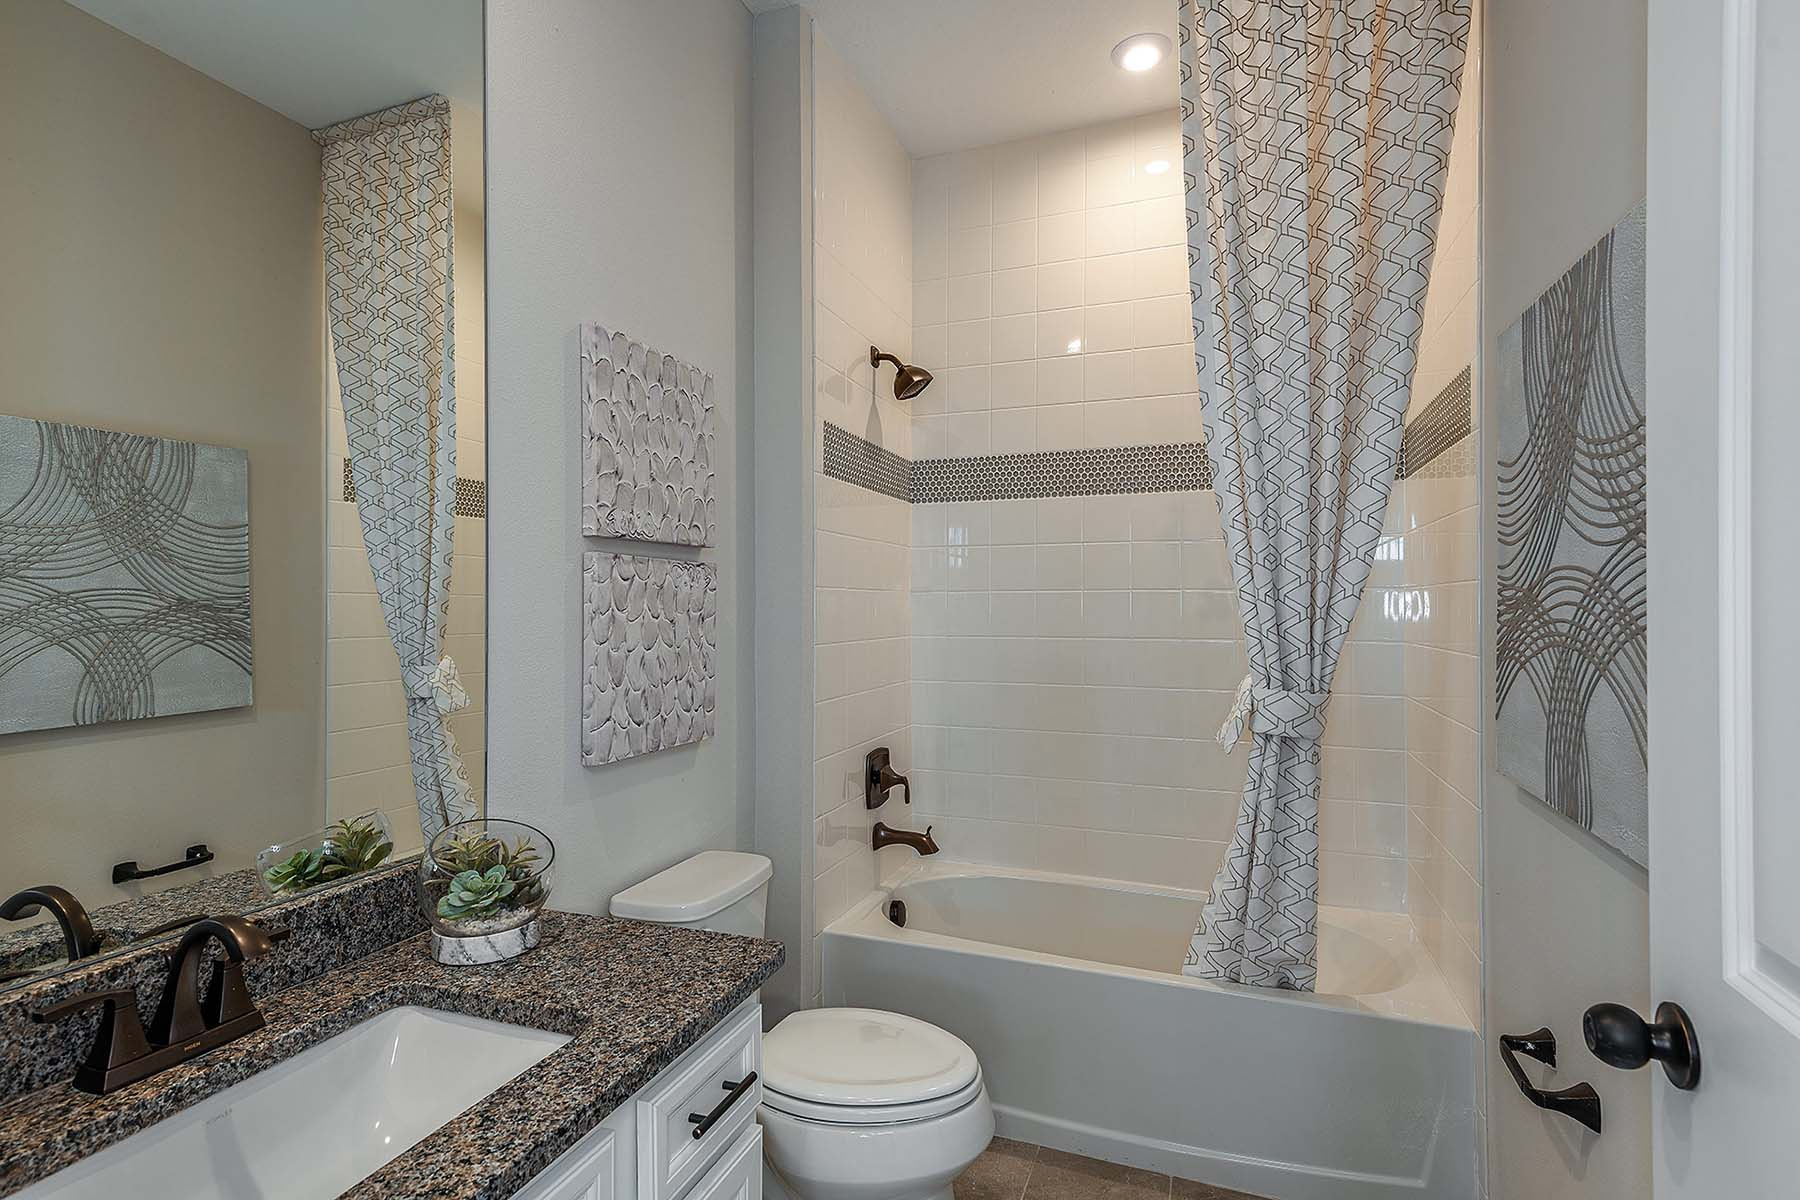 Largo Plan Bath at Bonavie Cove in Fort Myers Florida by Mattamy Homes